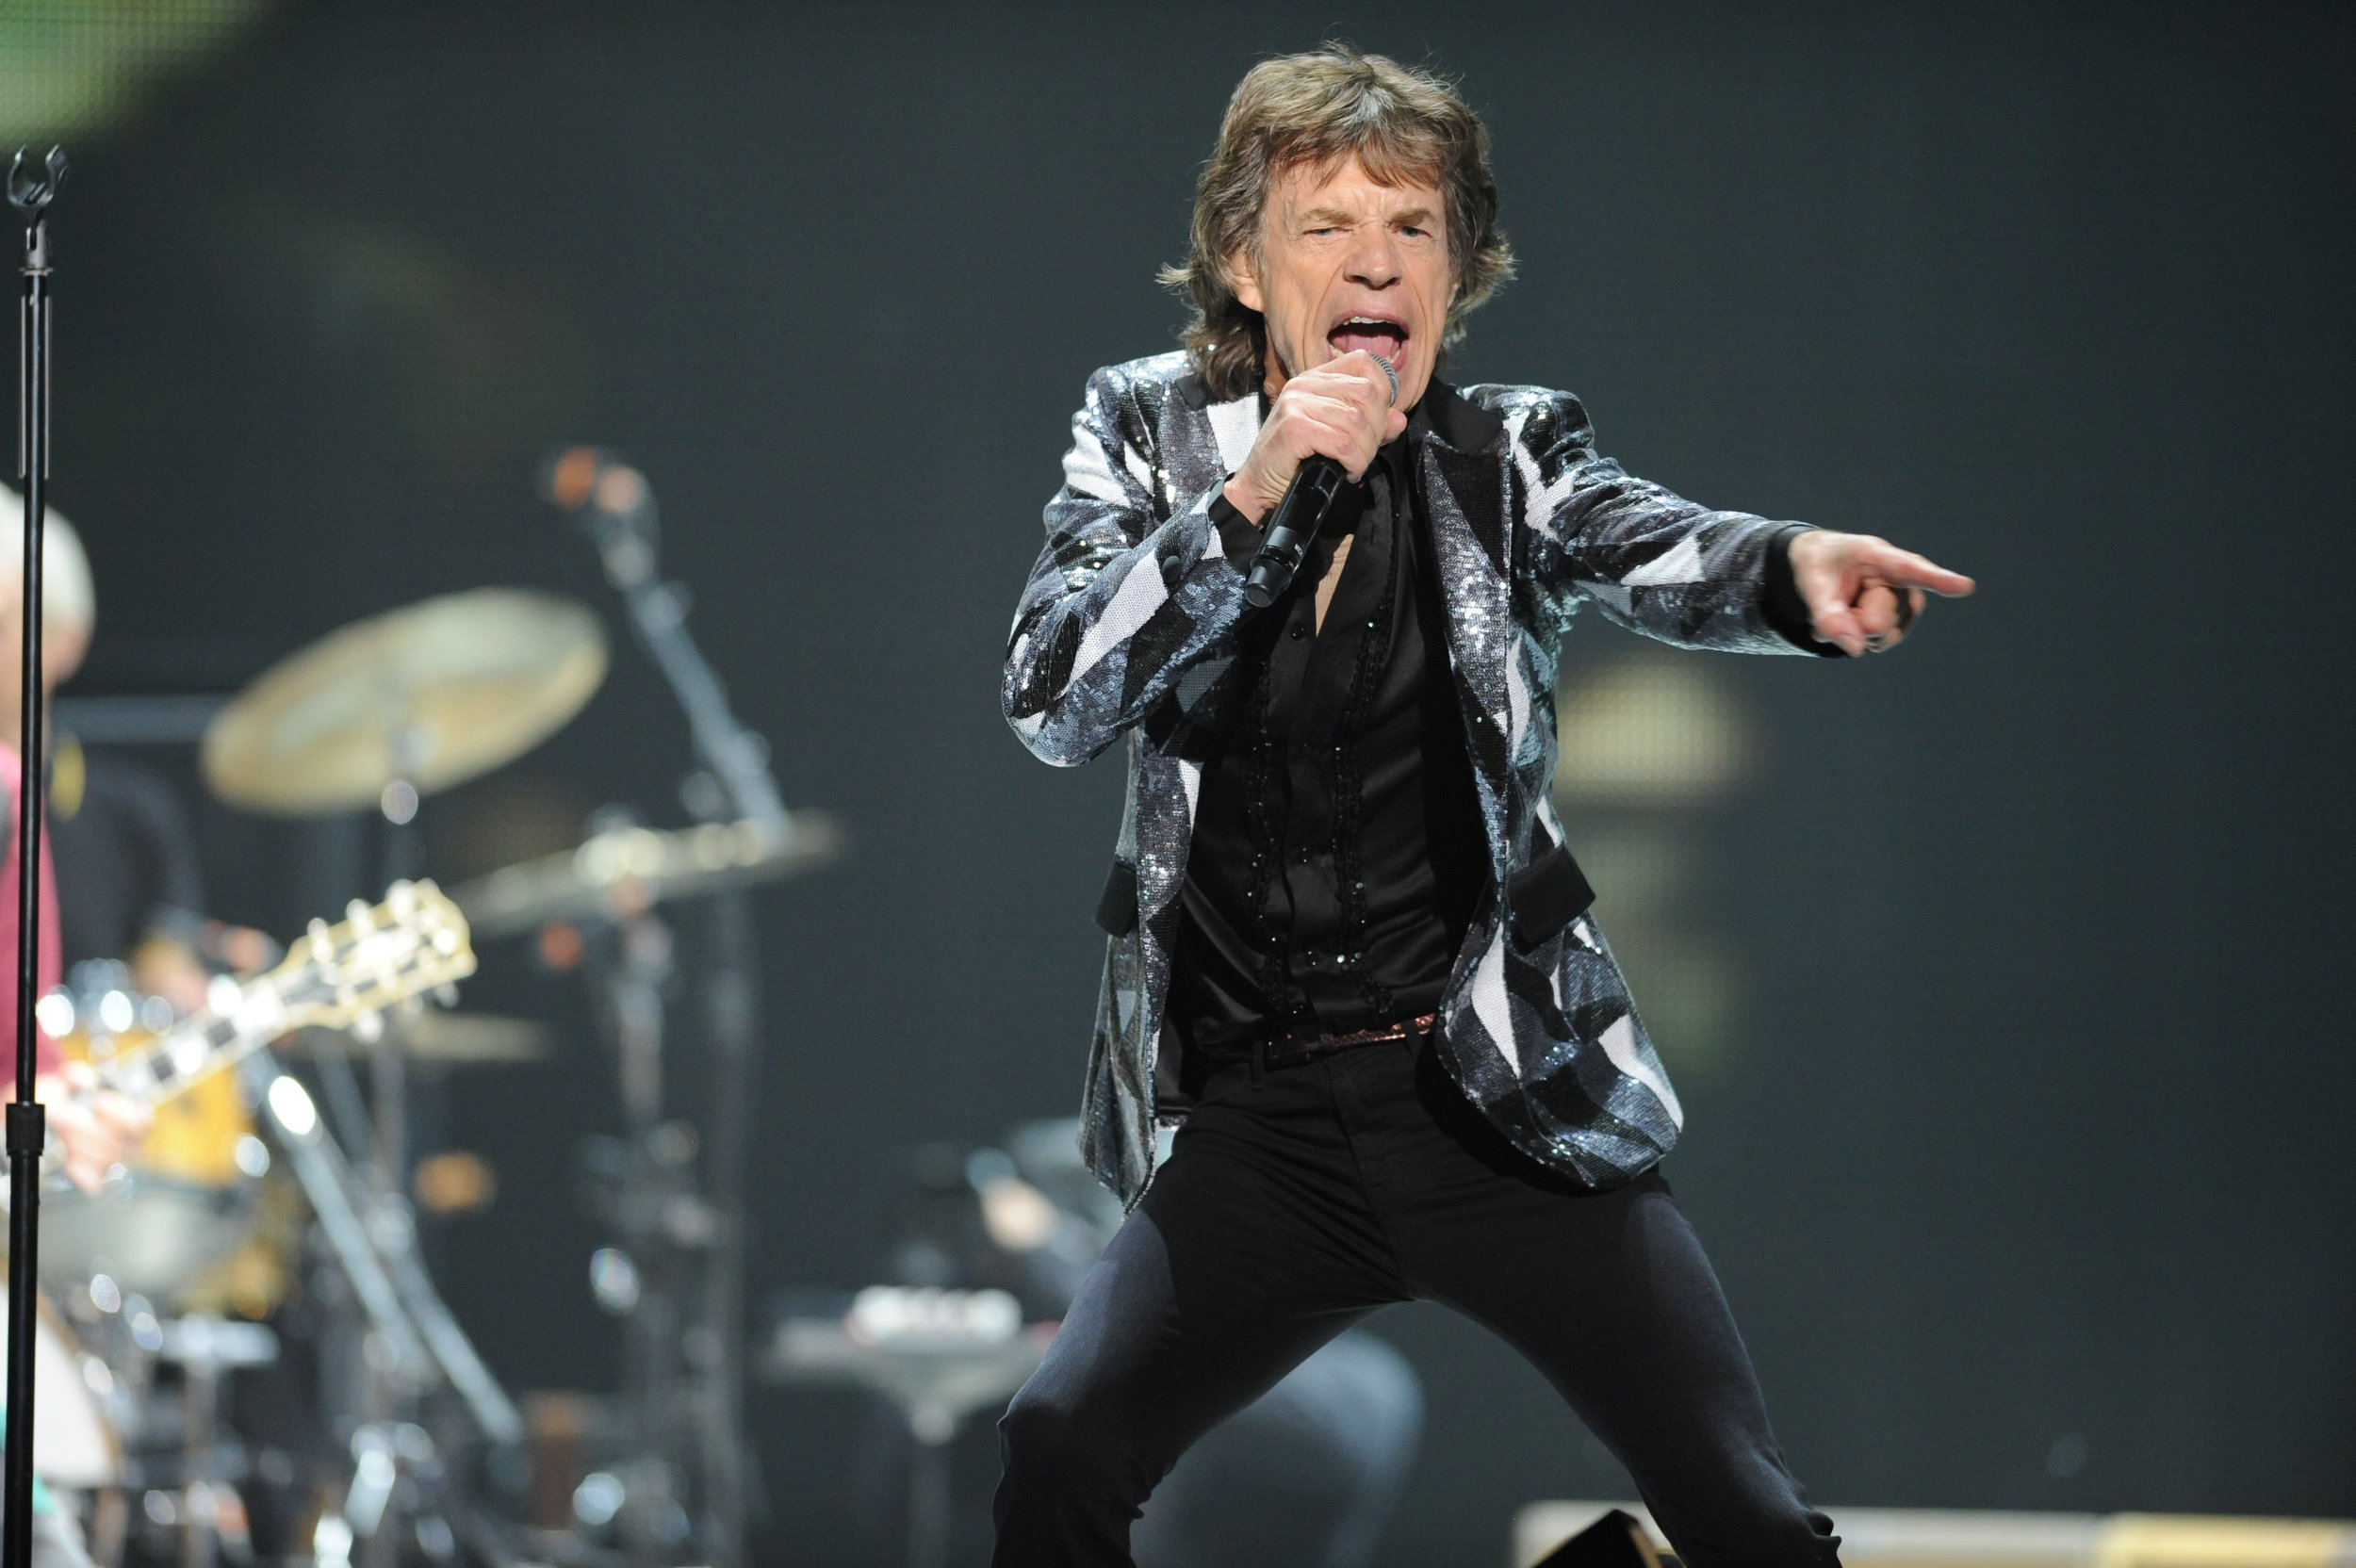 20130503_The_Rolling_Stones_026.jpg